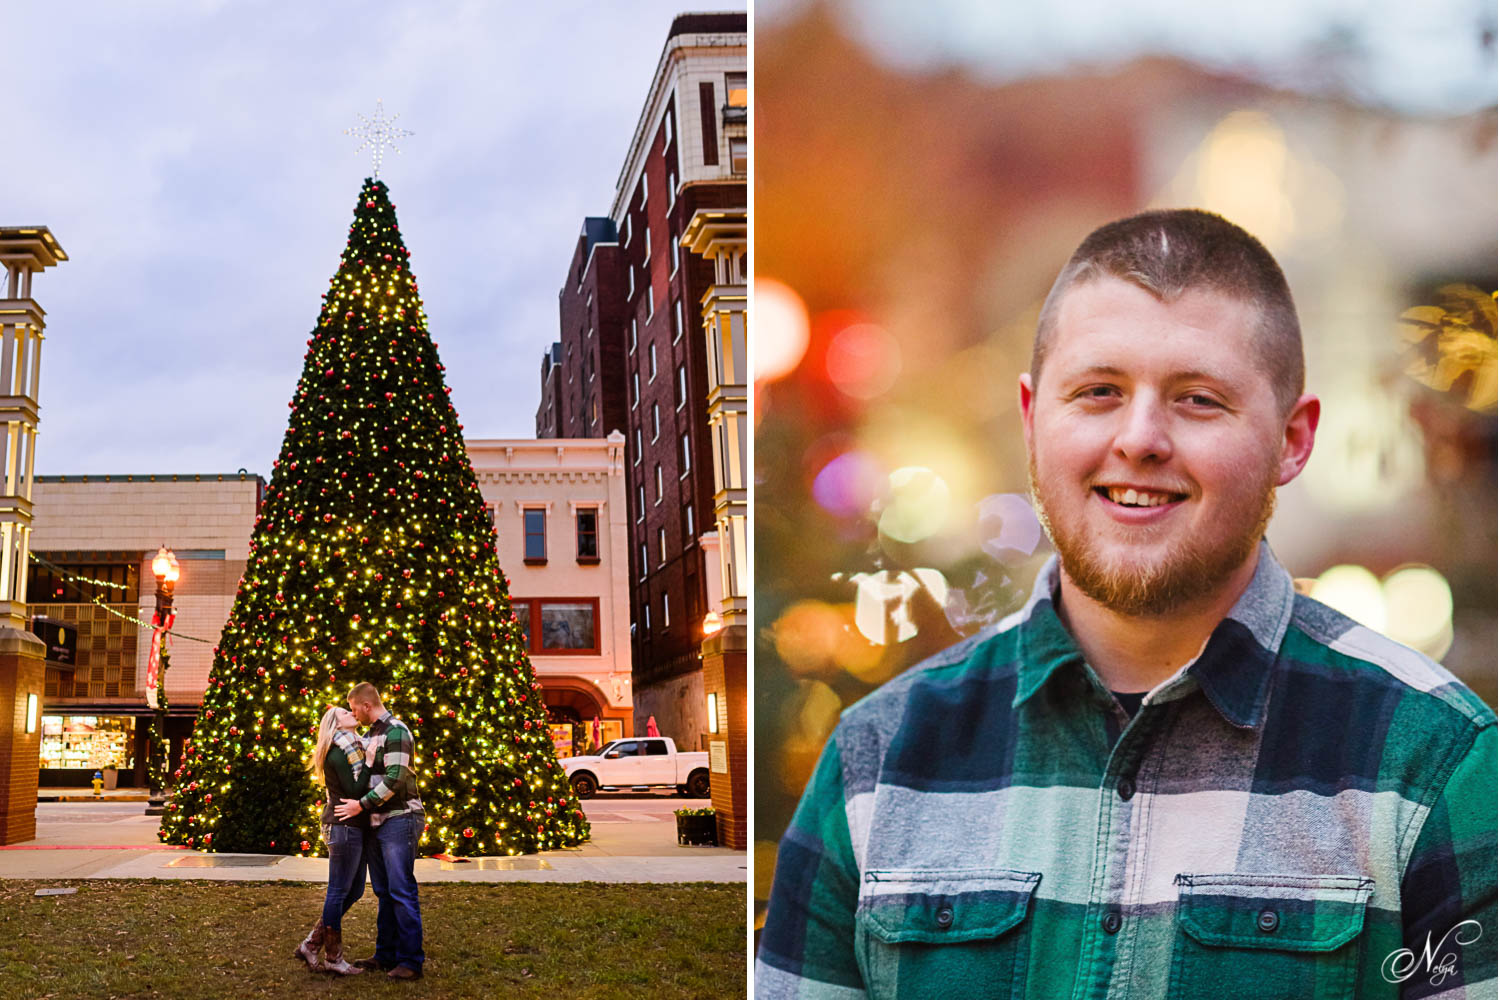 Gay st Christmas tree with couple in front of it. And portrait ofhandsome fiance with christmas lights in the background